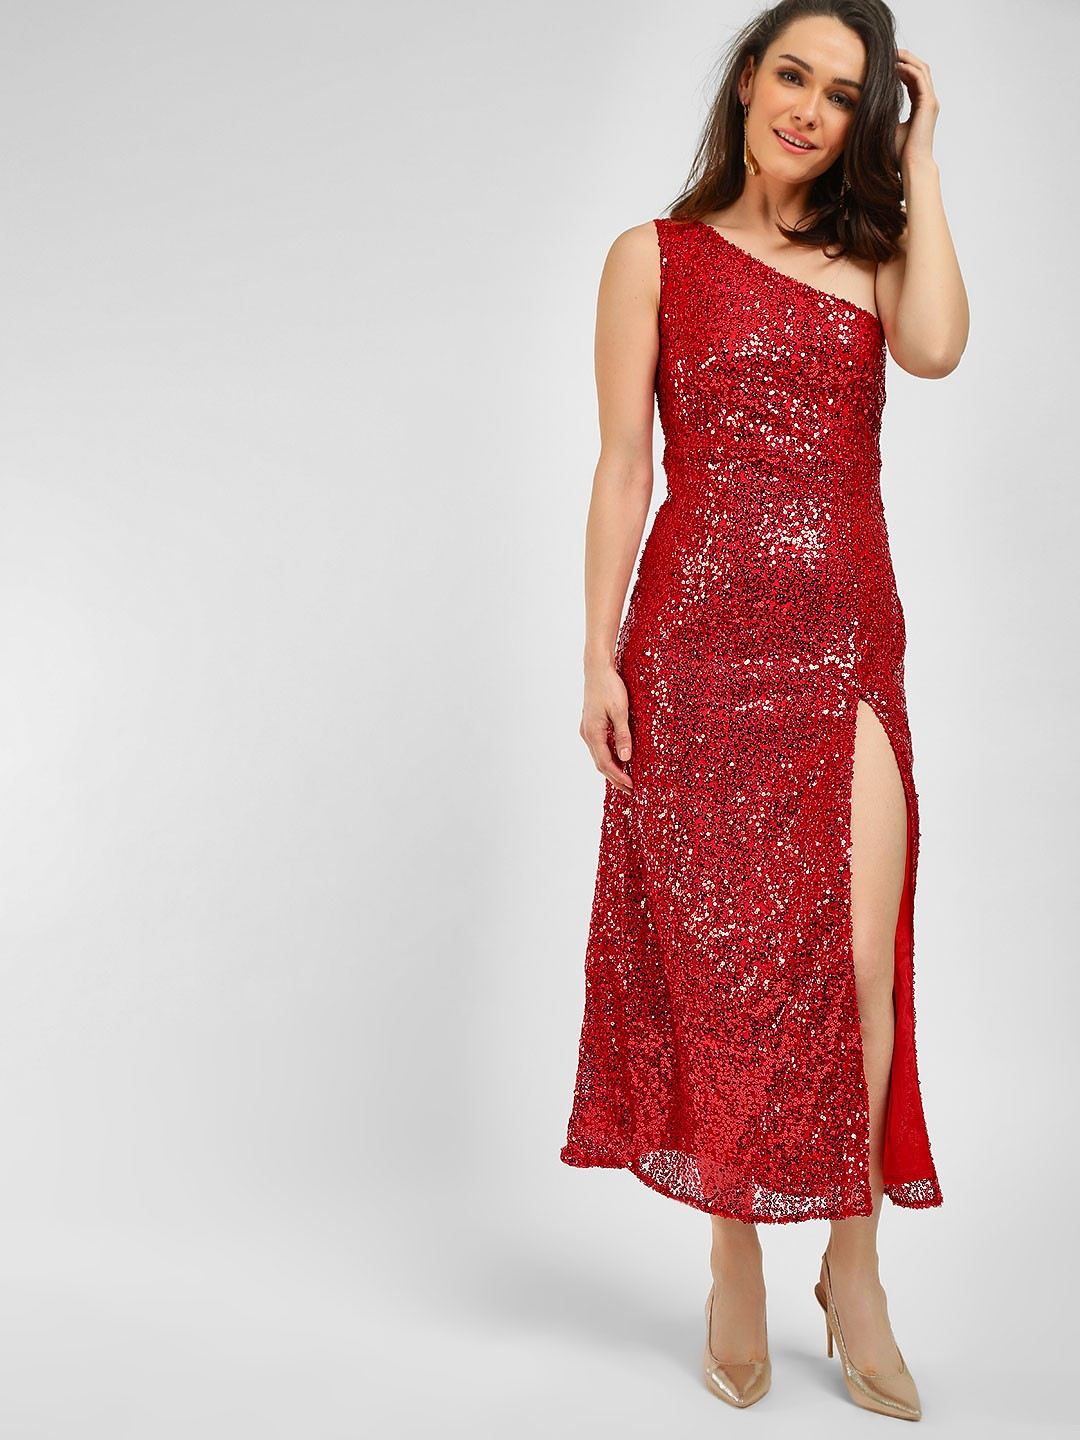 KOOVS Red One Shoulder Sequin Maxi Dress 1